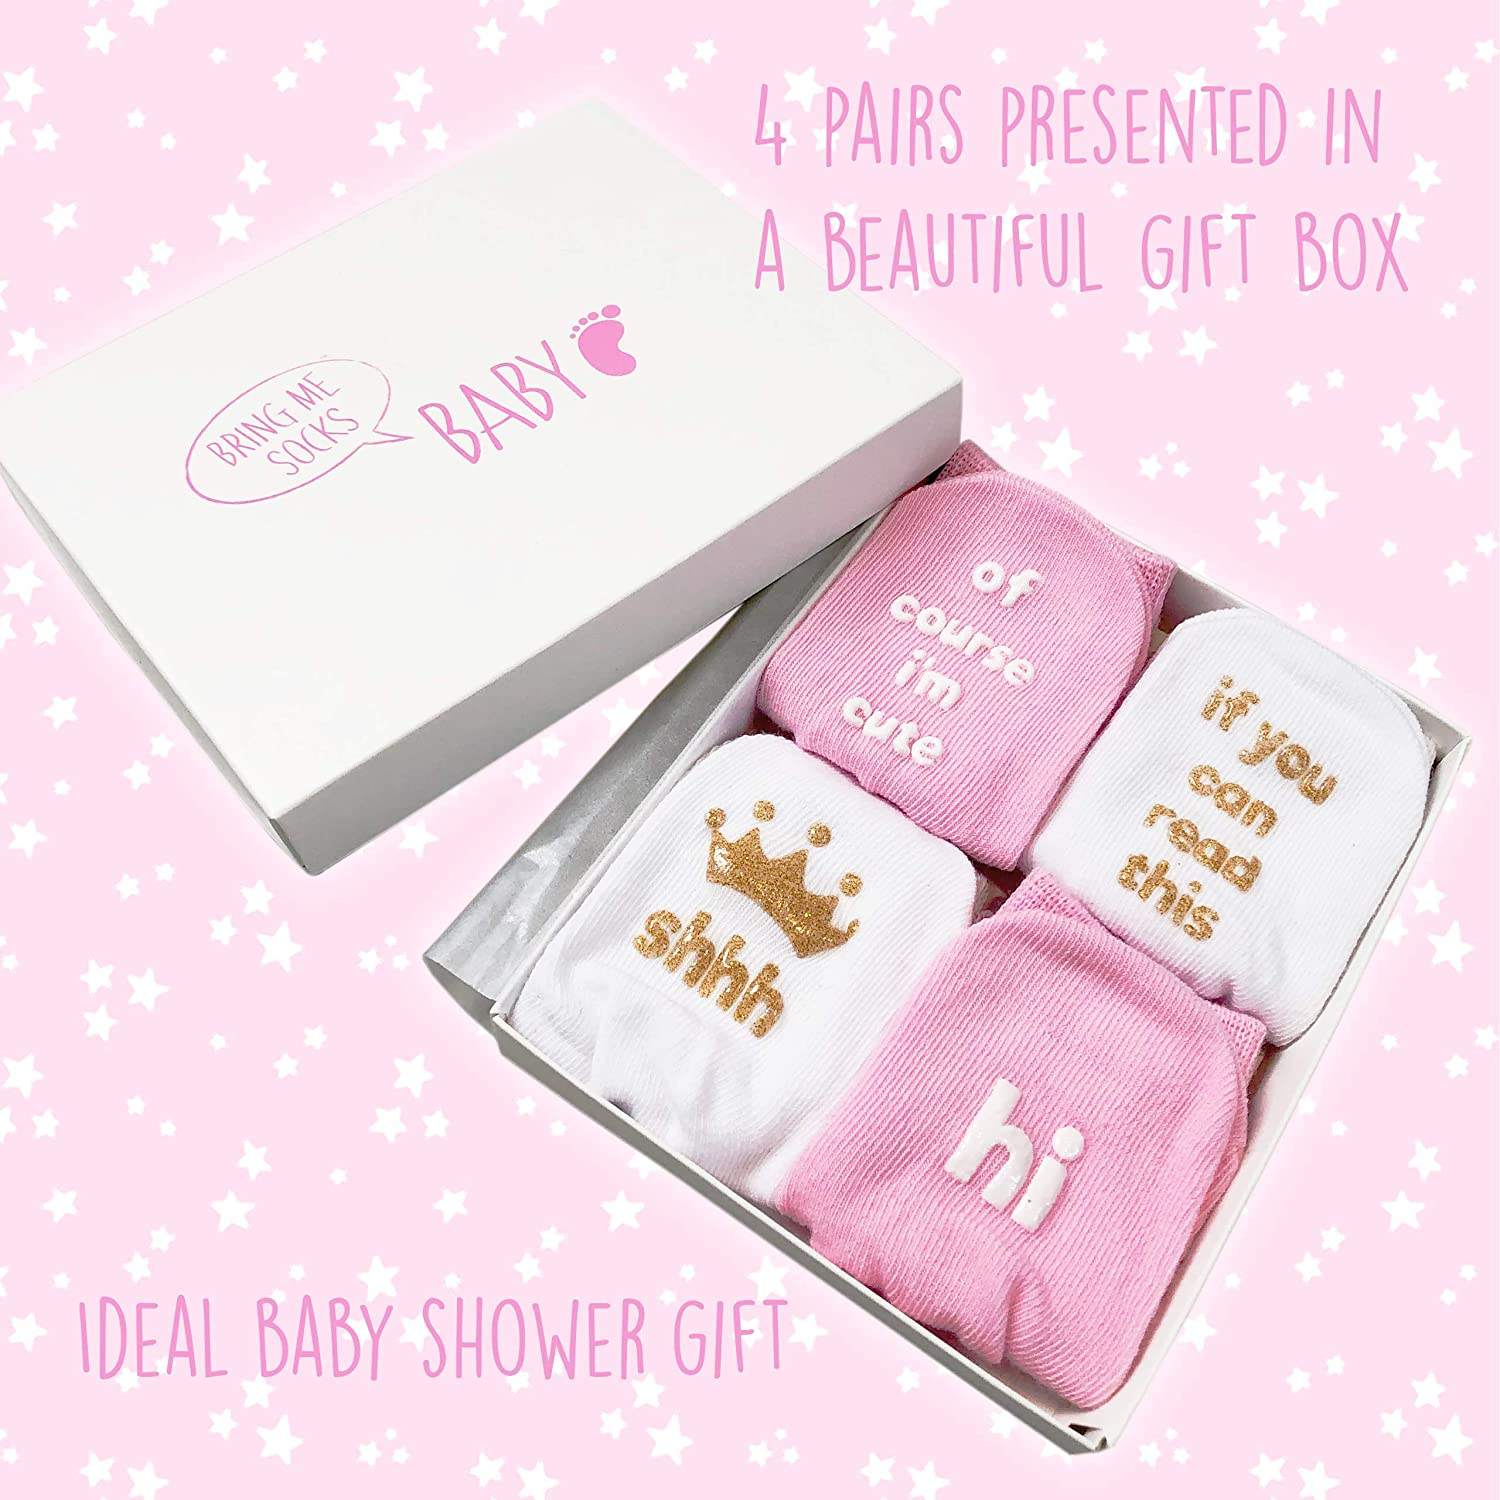 Unique Baby Shower or Newborn Gift For Him or Her 4 Pairs of Cute Quotes in Gift Box Baby Boys /& Girls Socks Gift Set